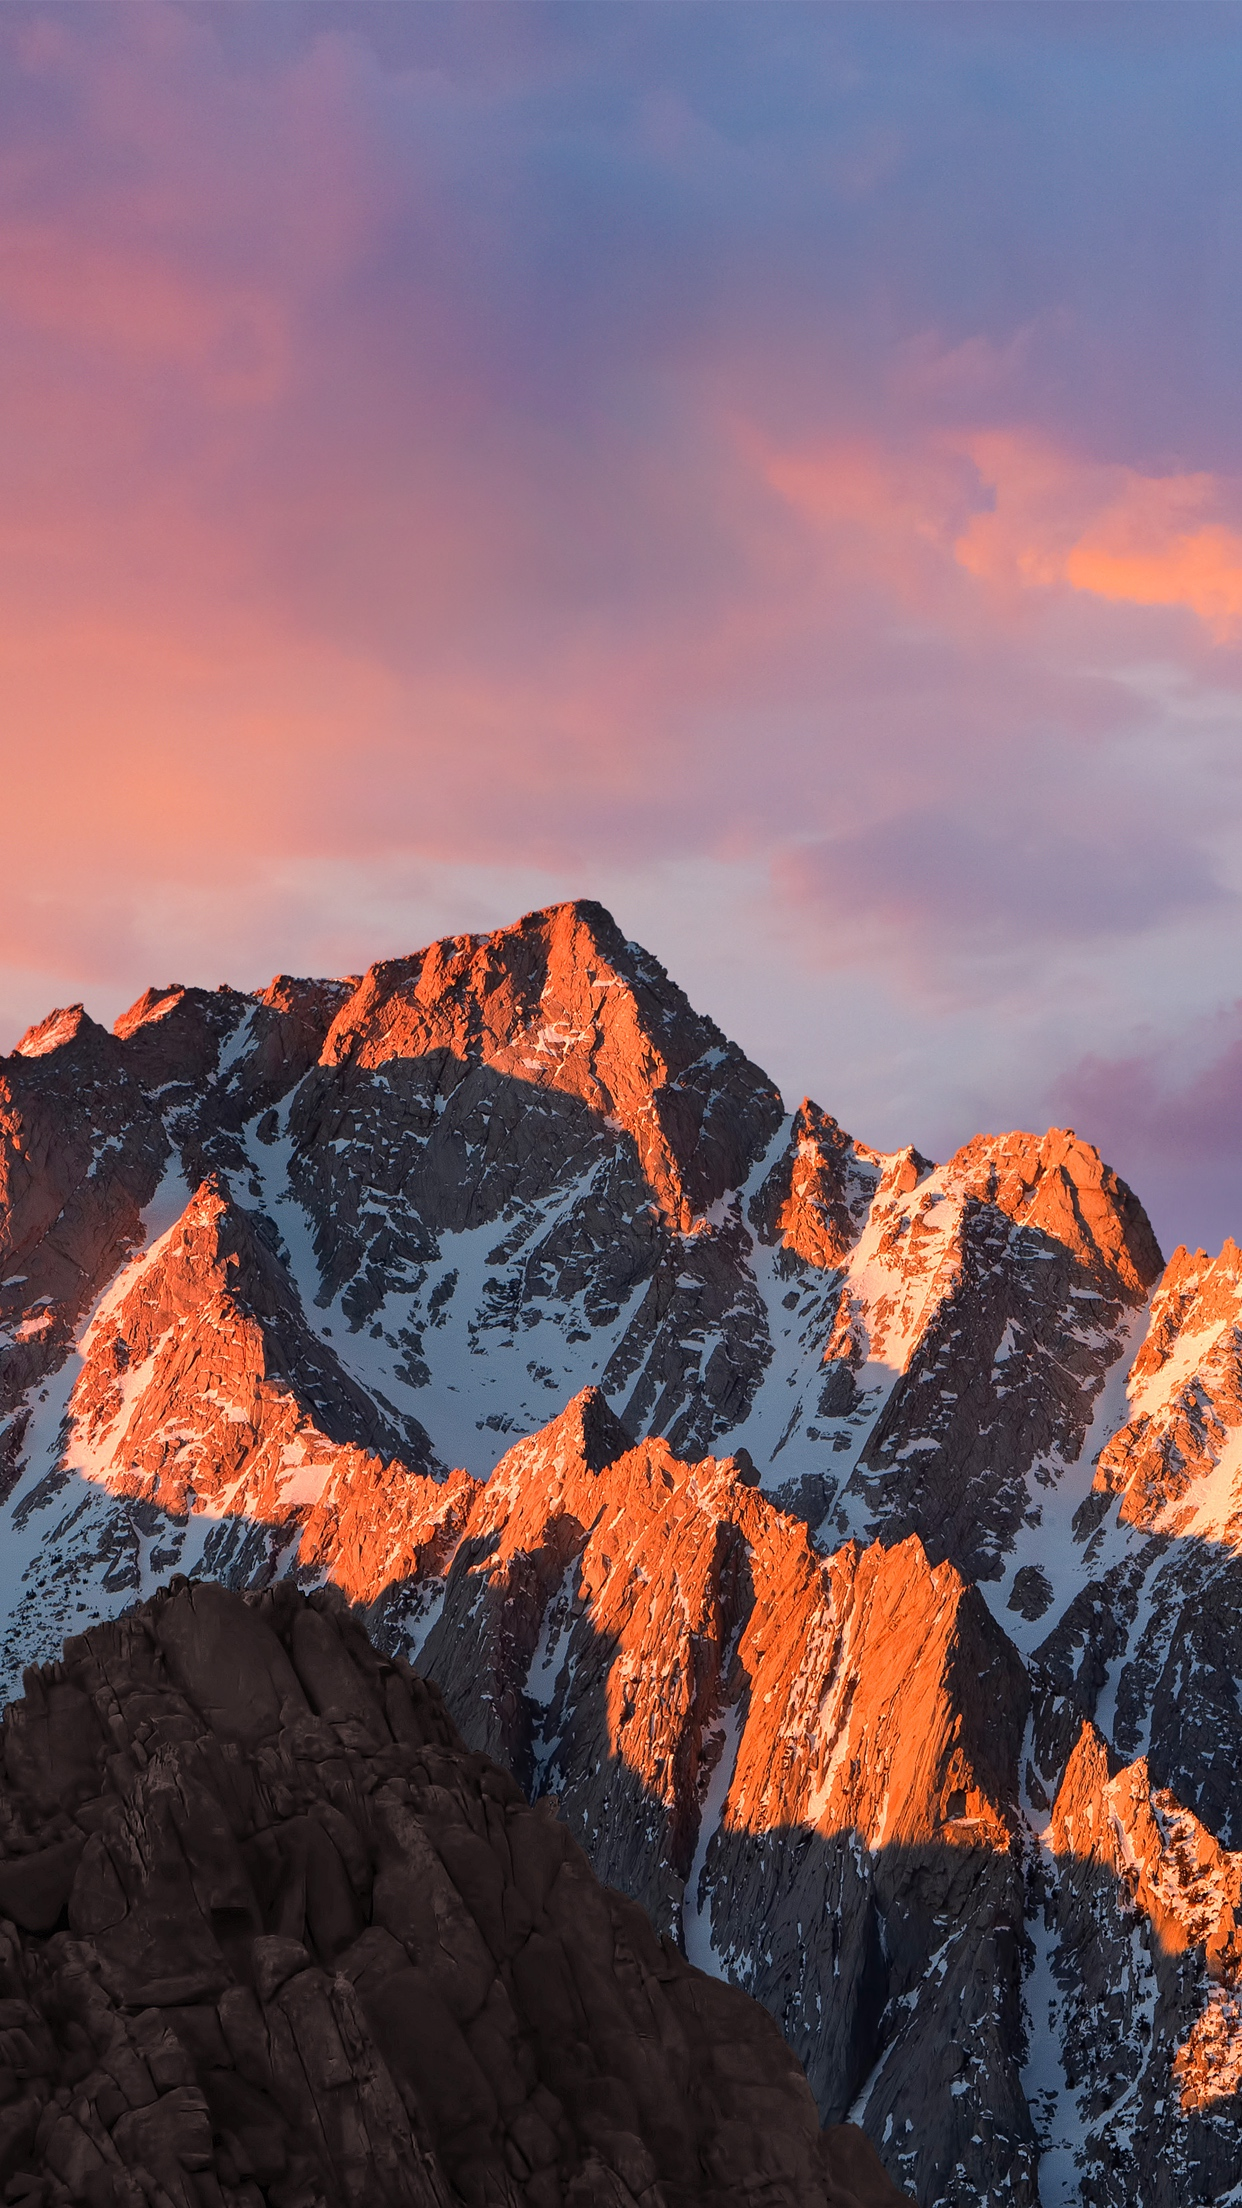 Download The New Macos Sierra Wallpaper For Iphone Ipad And Desktop